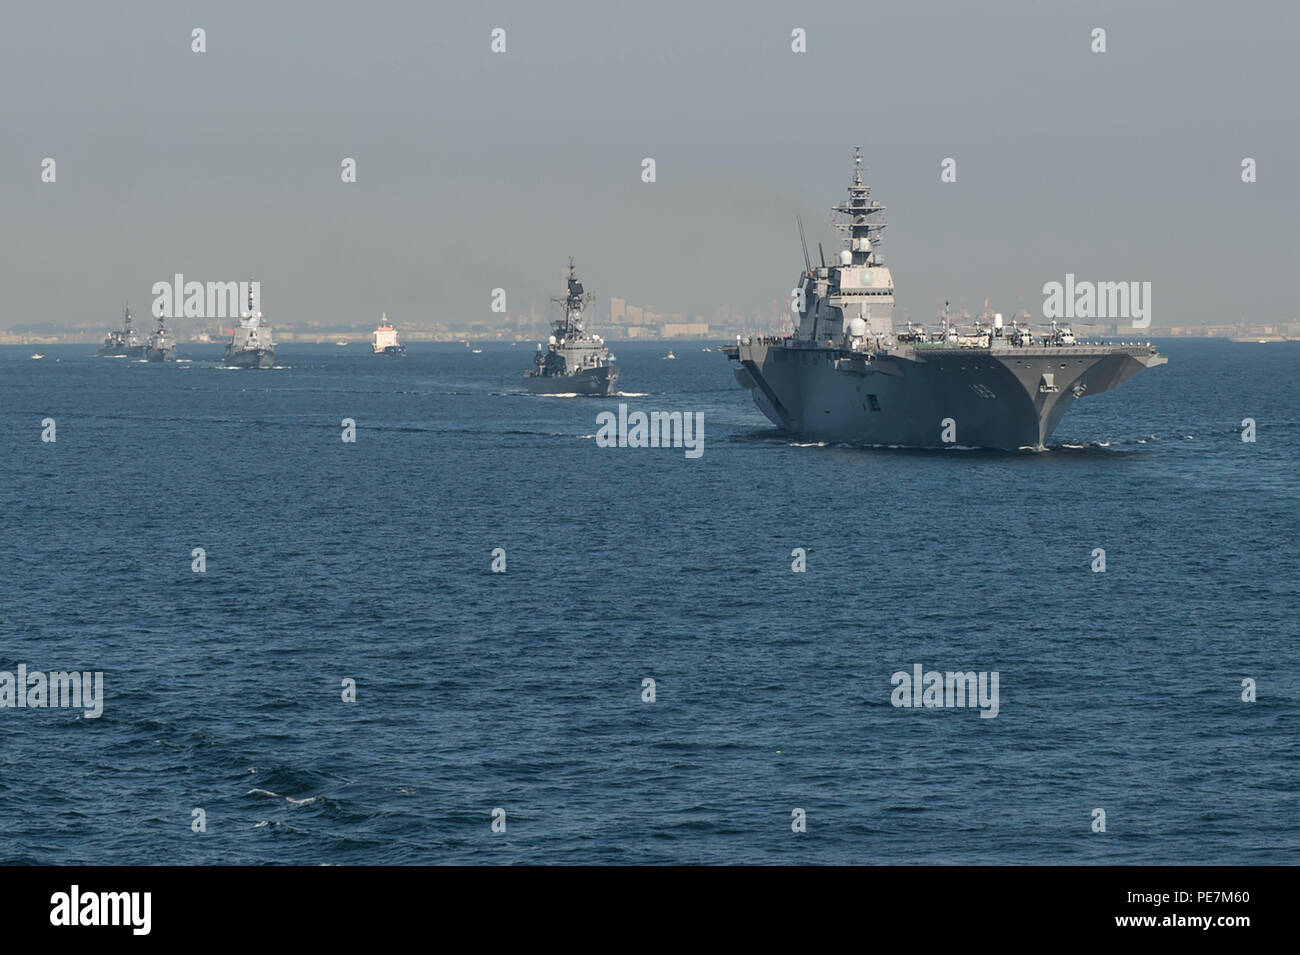 The flagship of the fleet of Japan - Izumo helicopter carrier